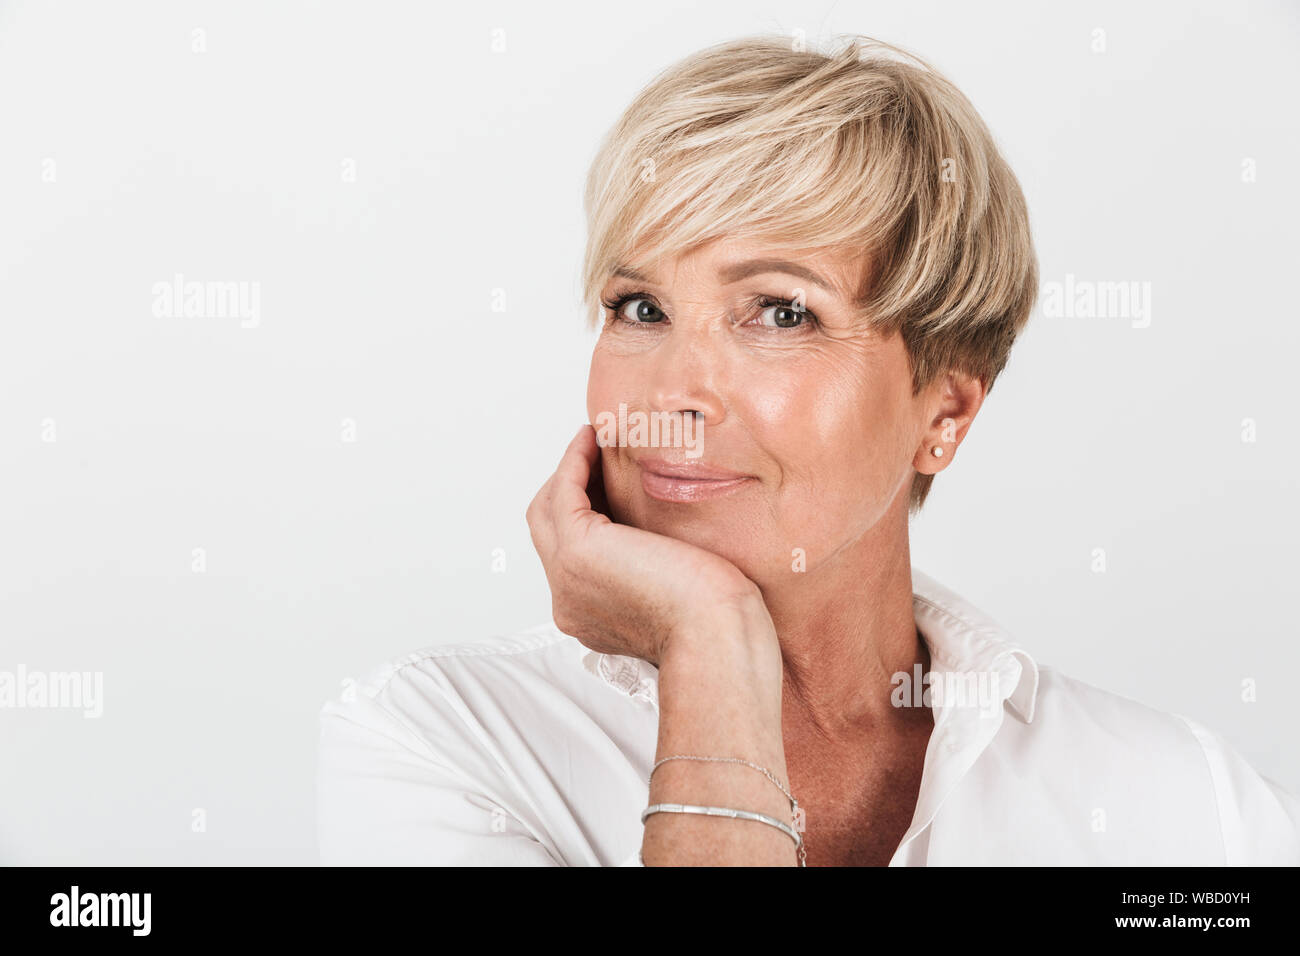 Portrait closeup of middle-aged woman with short blond hair looking at camera isolated over white background in studio Stock Photo